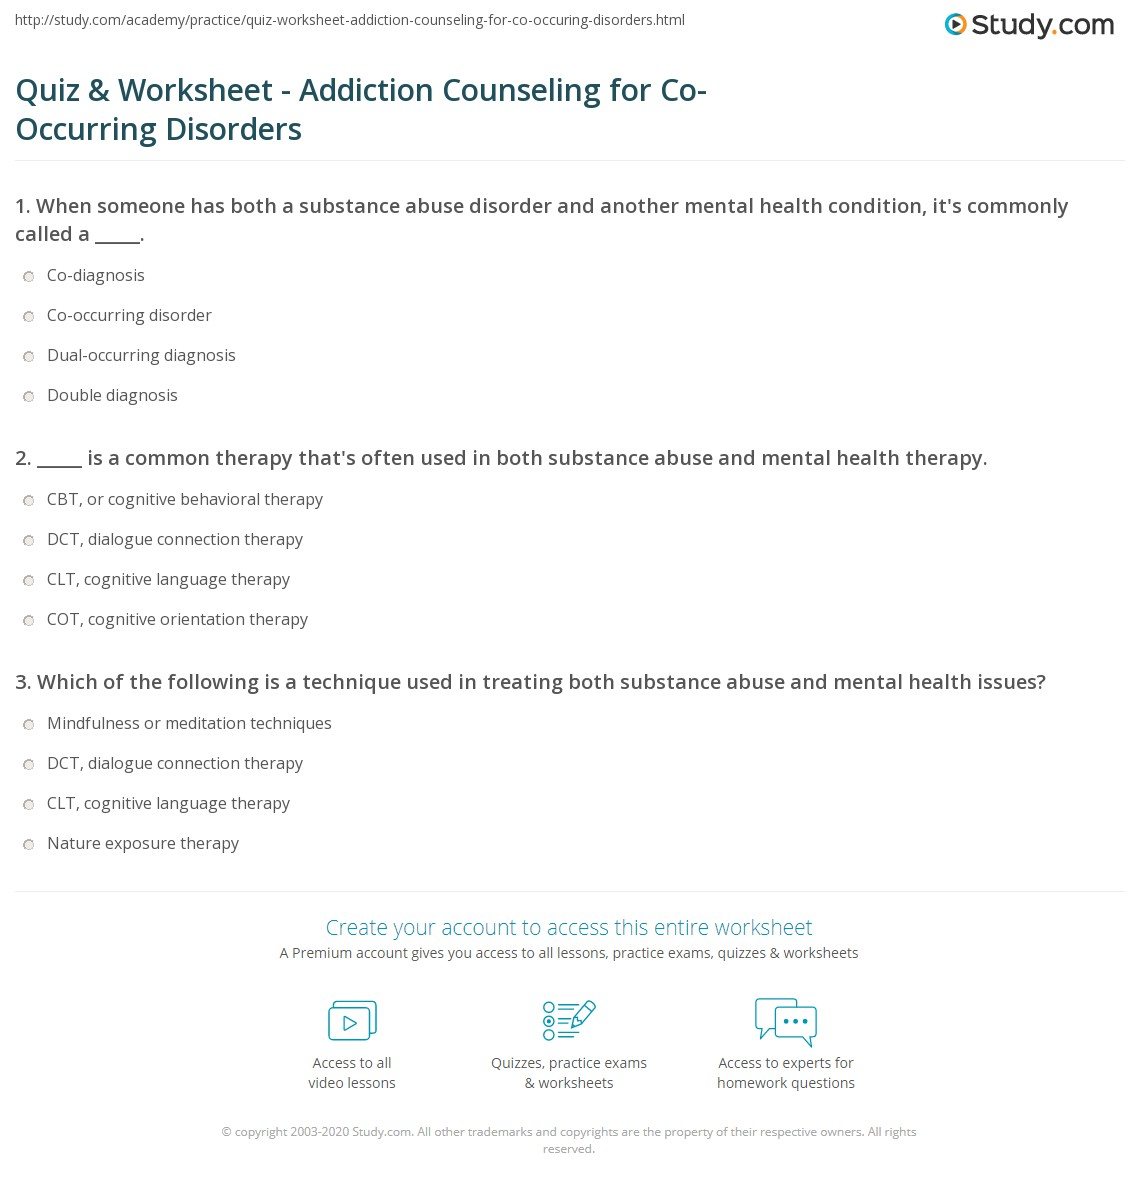 Coping Skills Worksheets For Substance Abuse